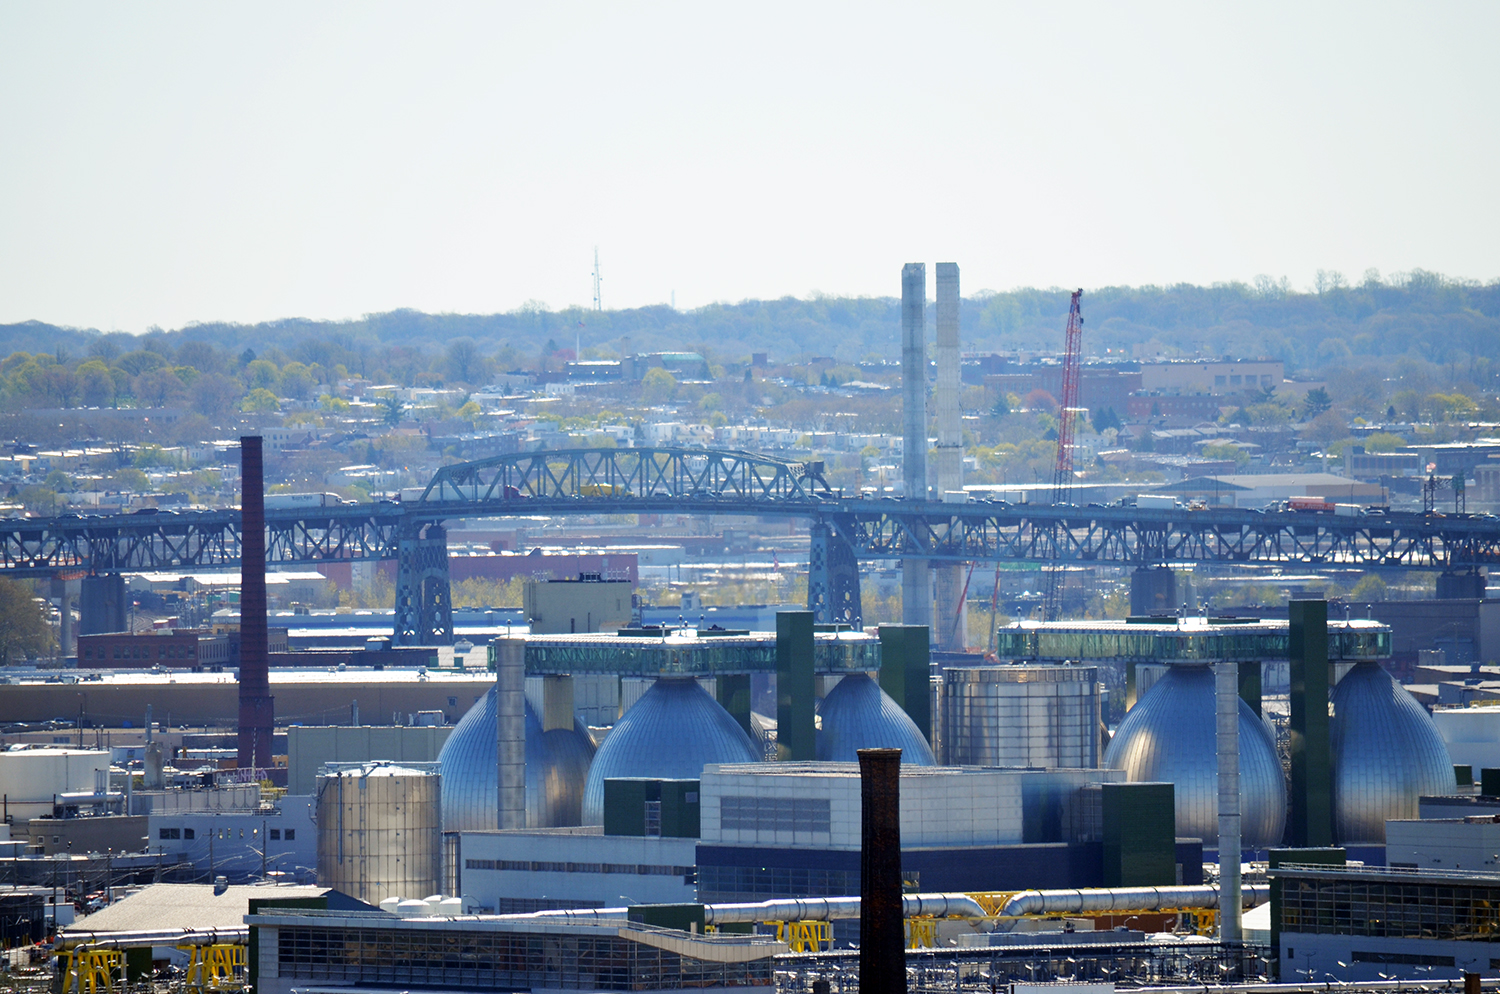 View of the current Kosciuszko Bridge and its replacement, seen from the skybridge at the American Copper Buildings